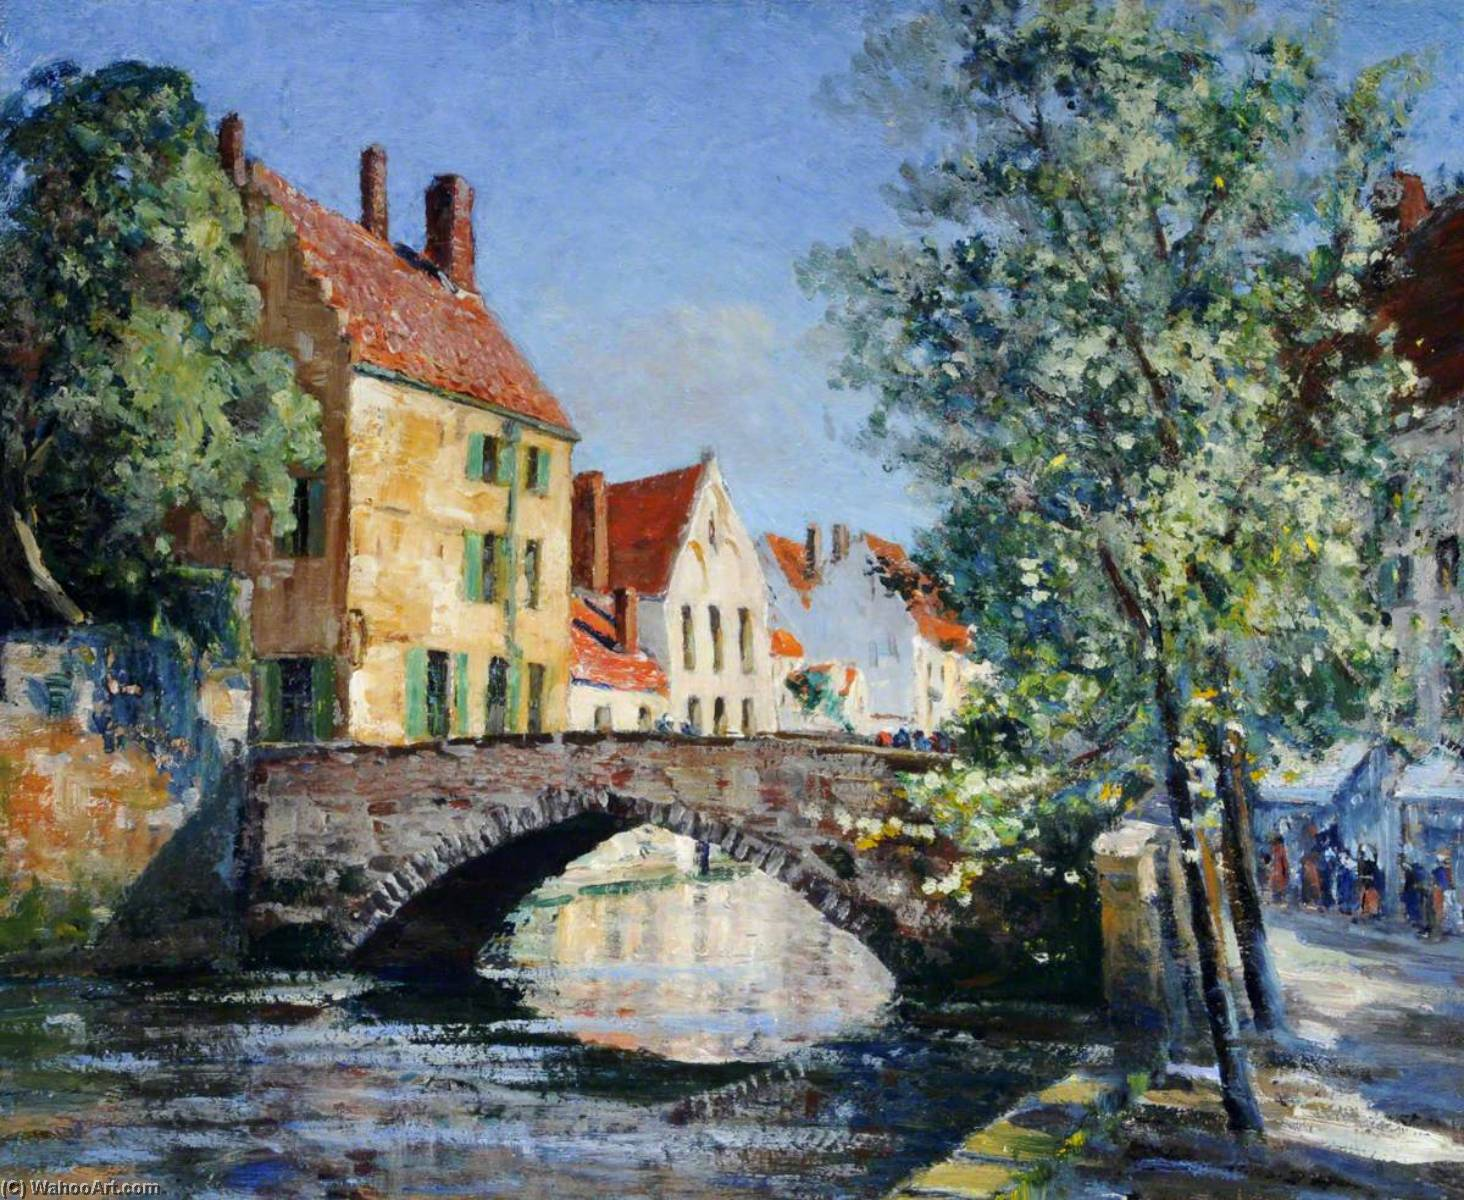 Bridge over a Canal, Bruges by Francis William Synge Le Maistre | Oil Painting | ArtsDot.com